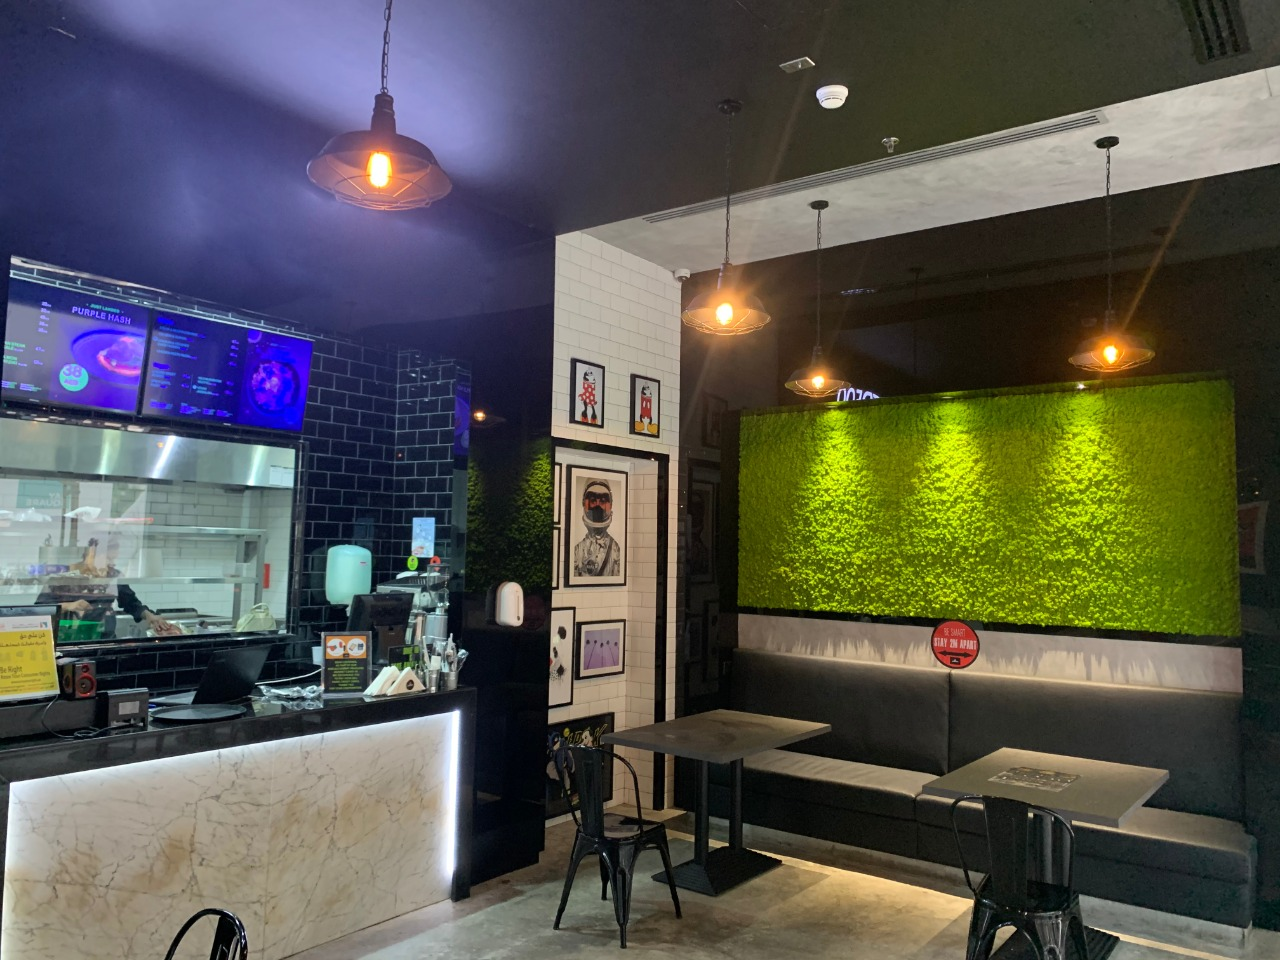 Restaurant_For_Sale_-_Urgent-_Prime_Location._(Buy_and_Launch_your_brand)_719